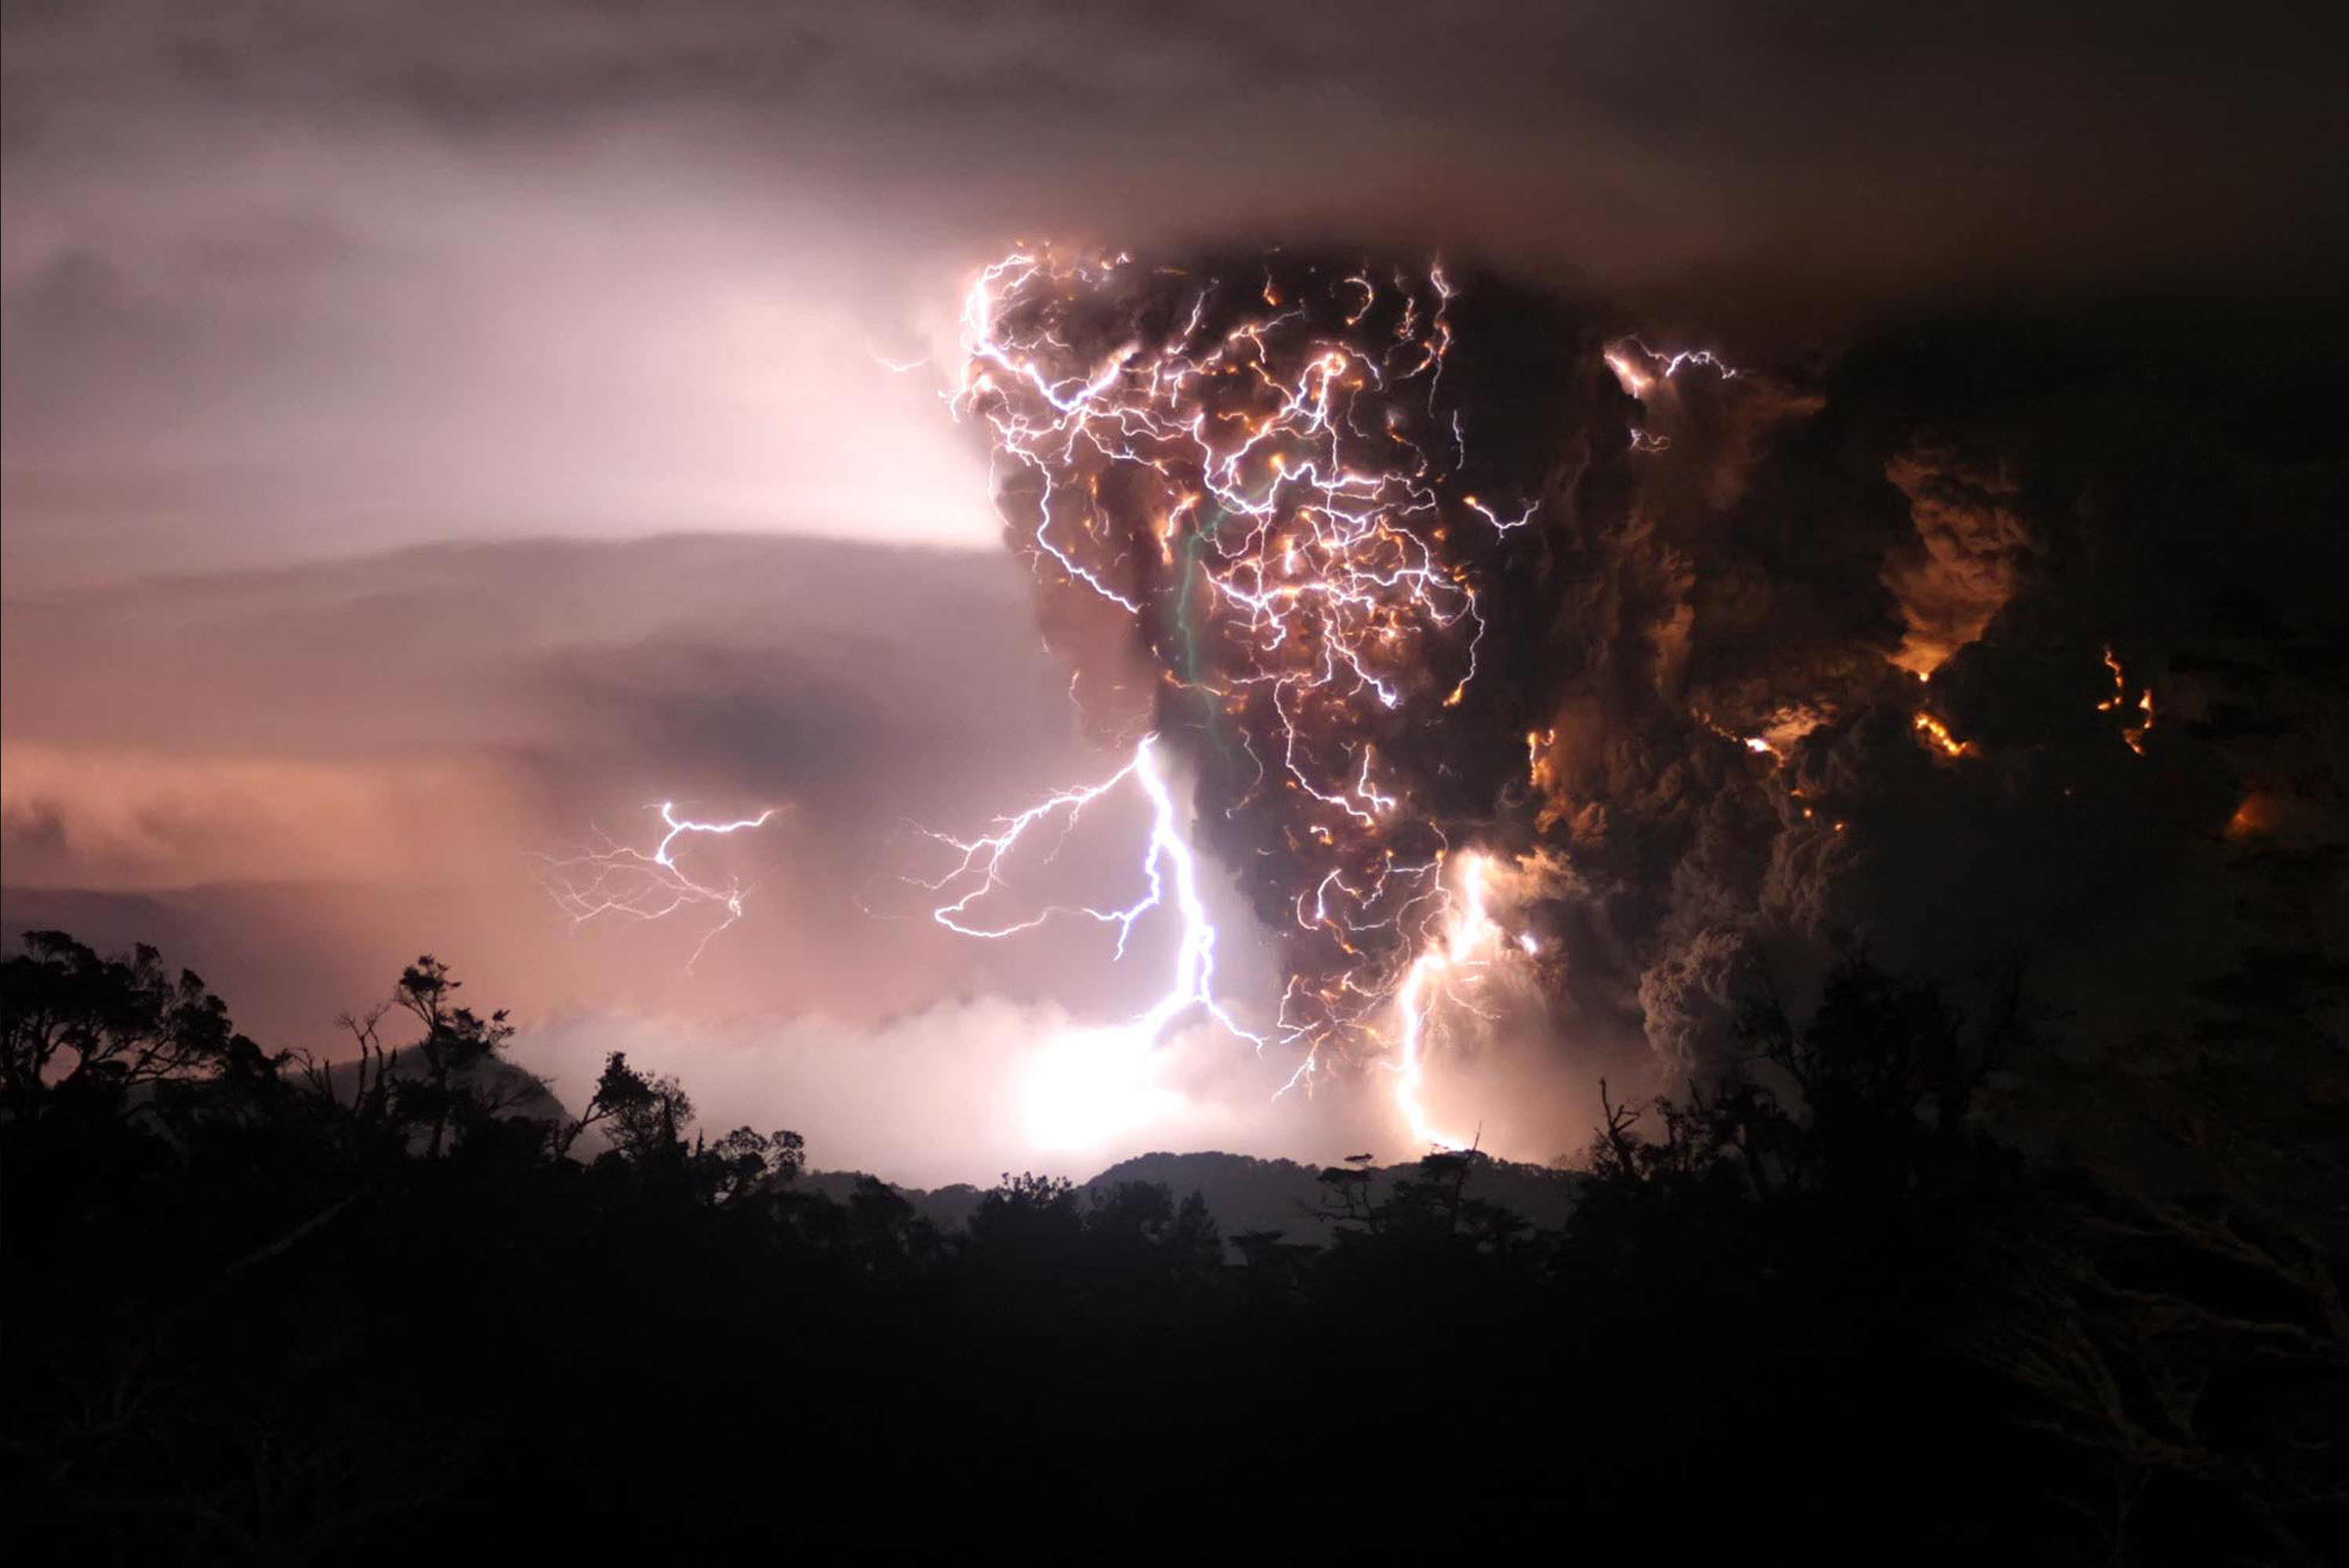 Res: 2996x2000, HD Wallpaper   Background Image ID:79987.  Photography Lightning.  spacelephant